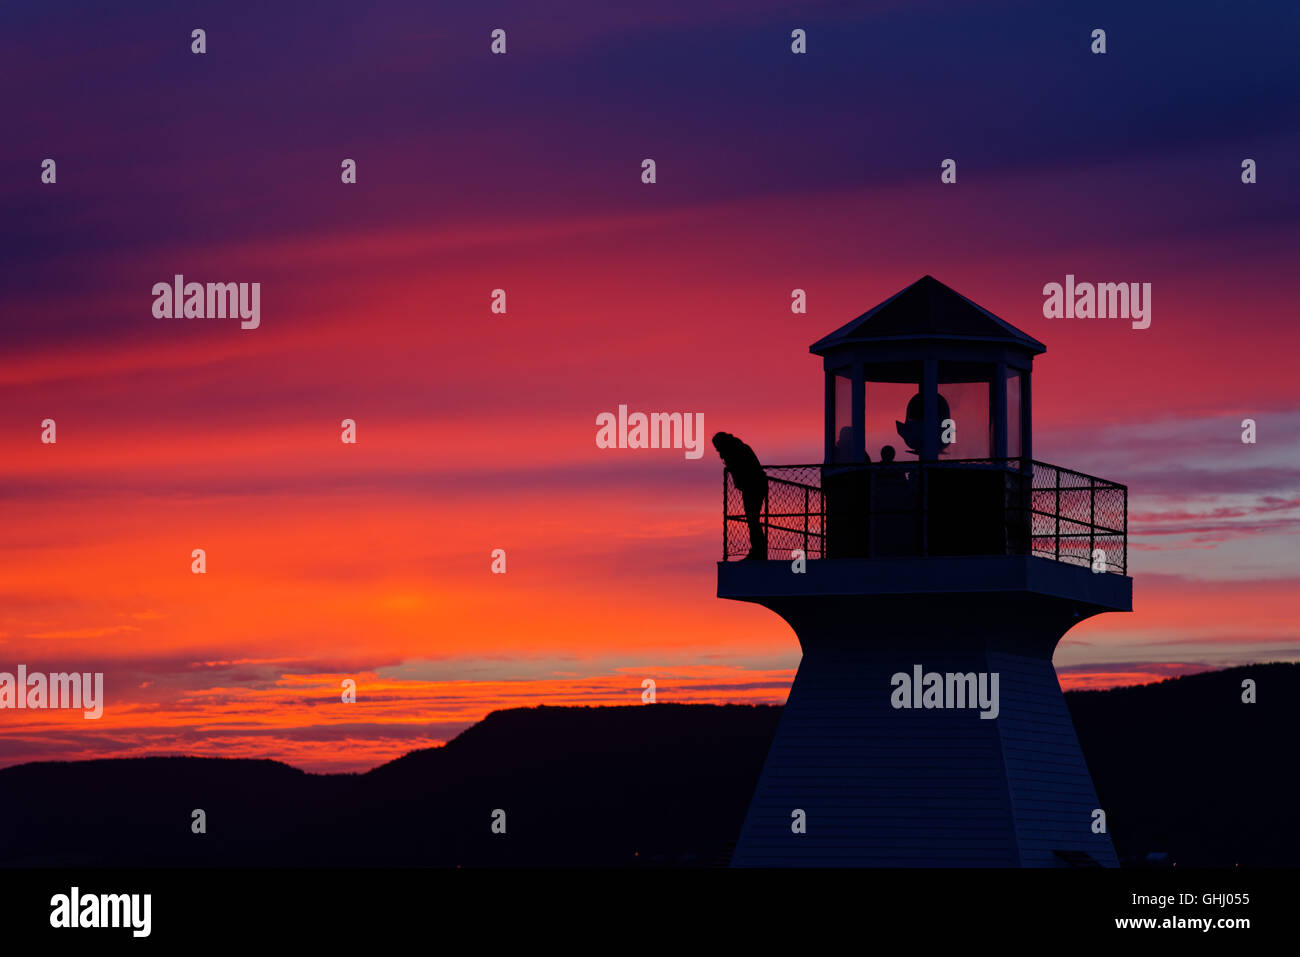 A person stood at the top of a lighthouse, silhouetted against a fiery sunset in Carleton Gaspesie Quebec Canada Stock Photo